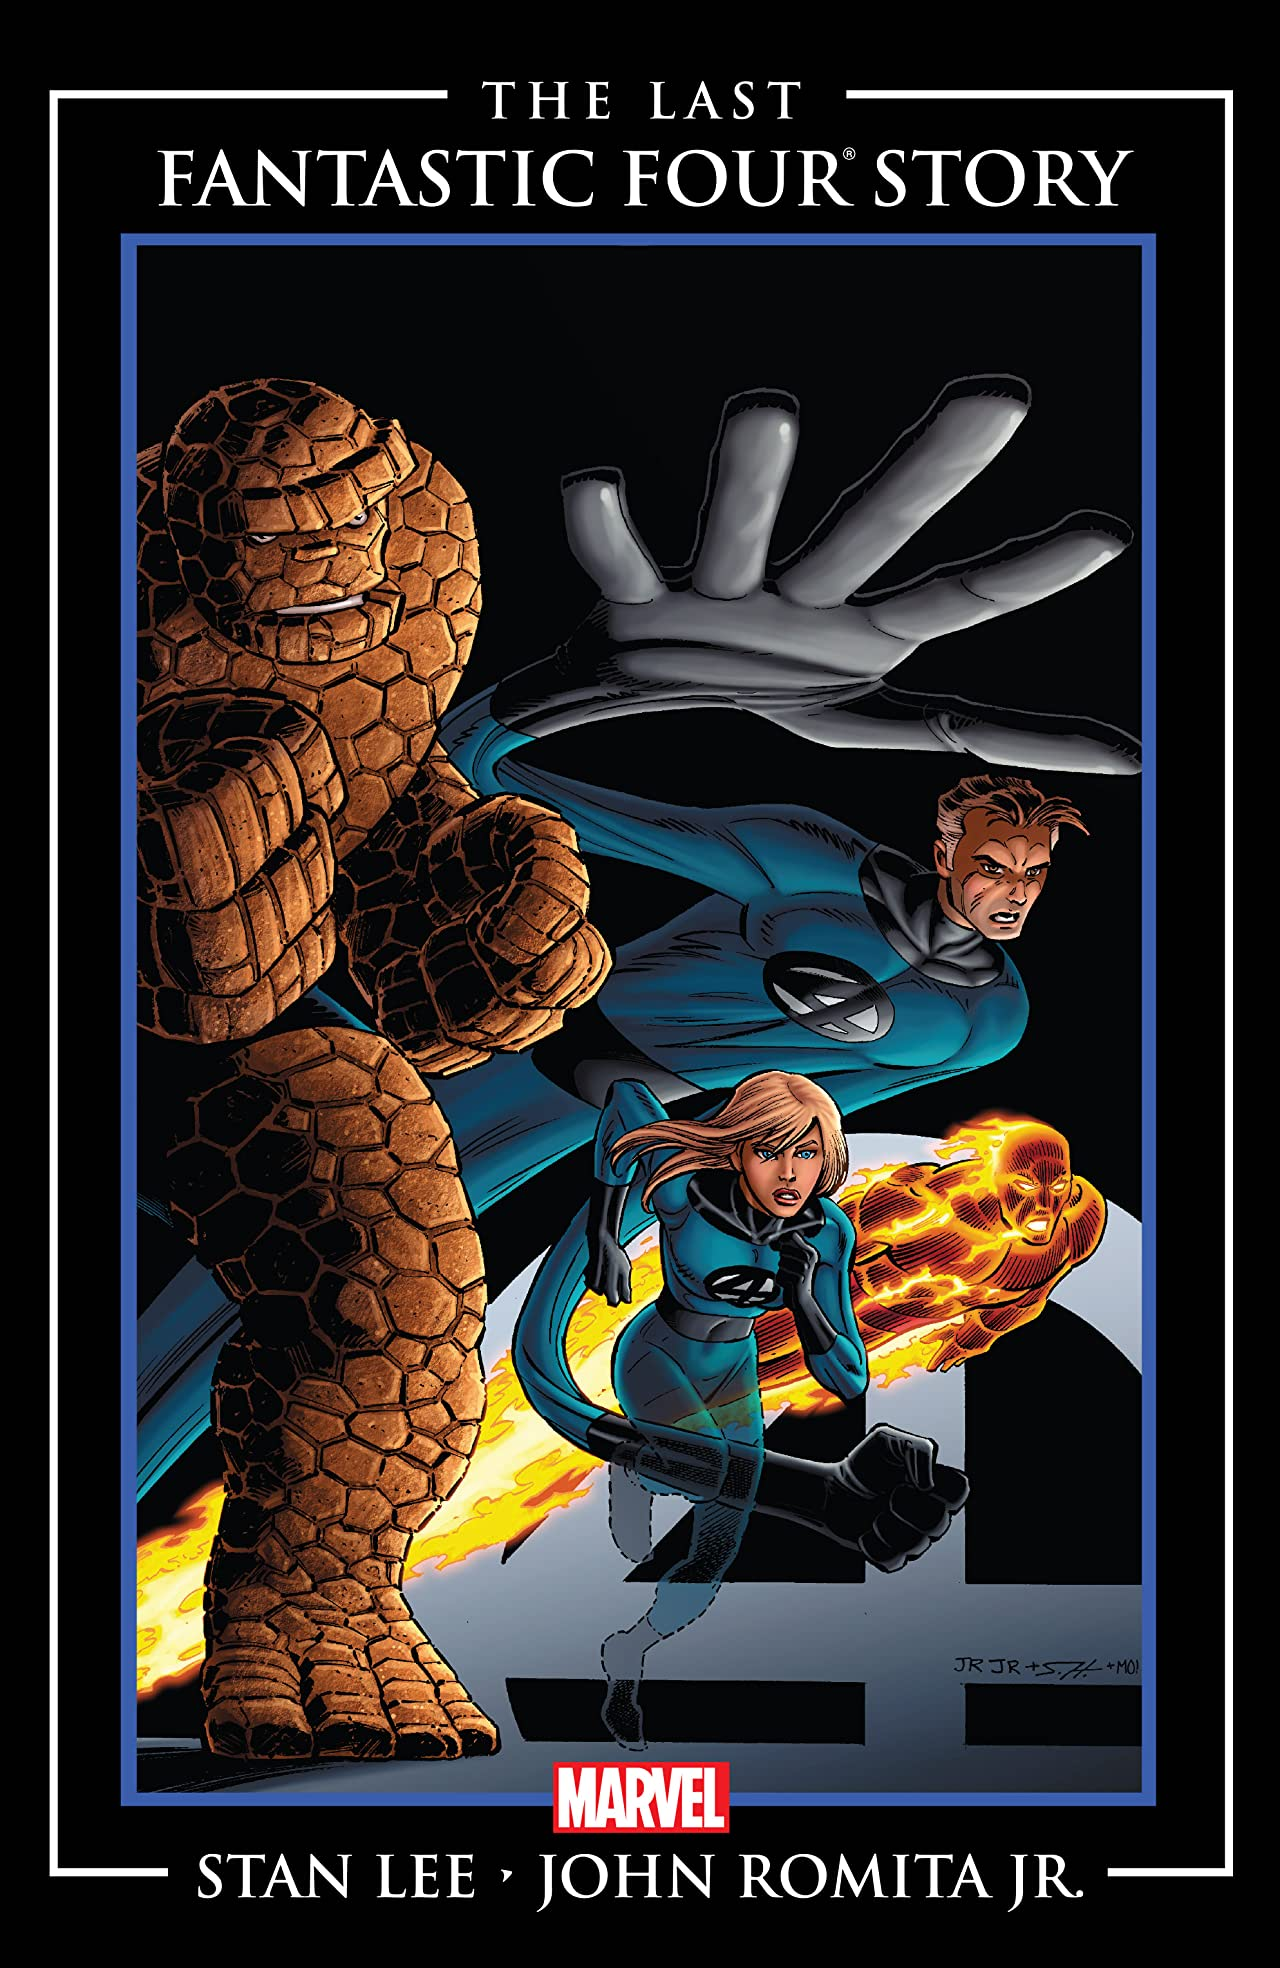 The Last Fantastic Four Story (2007) #1